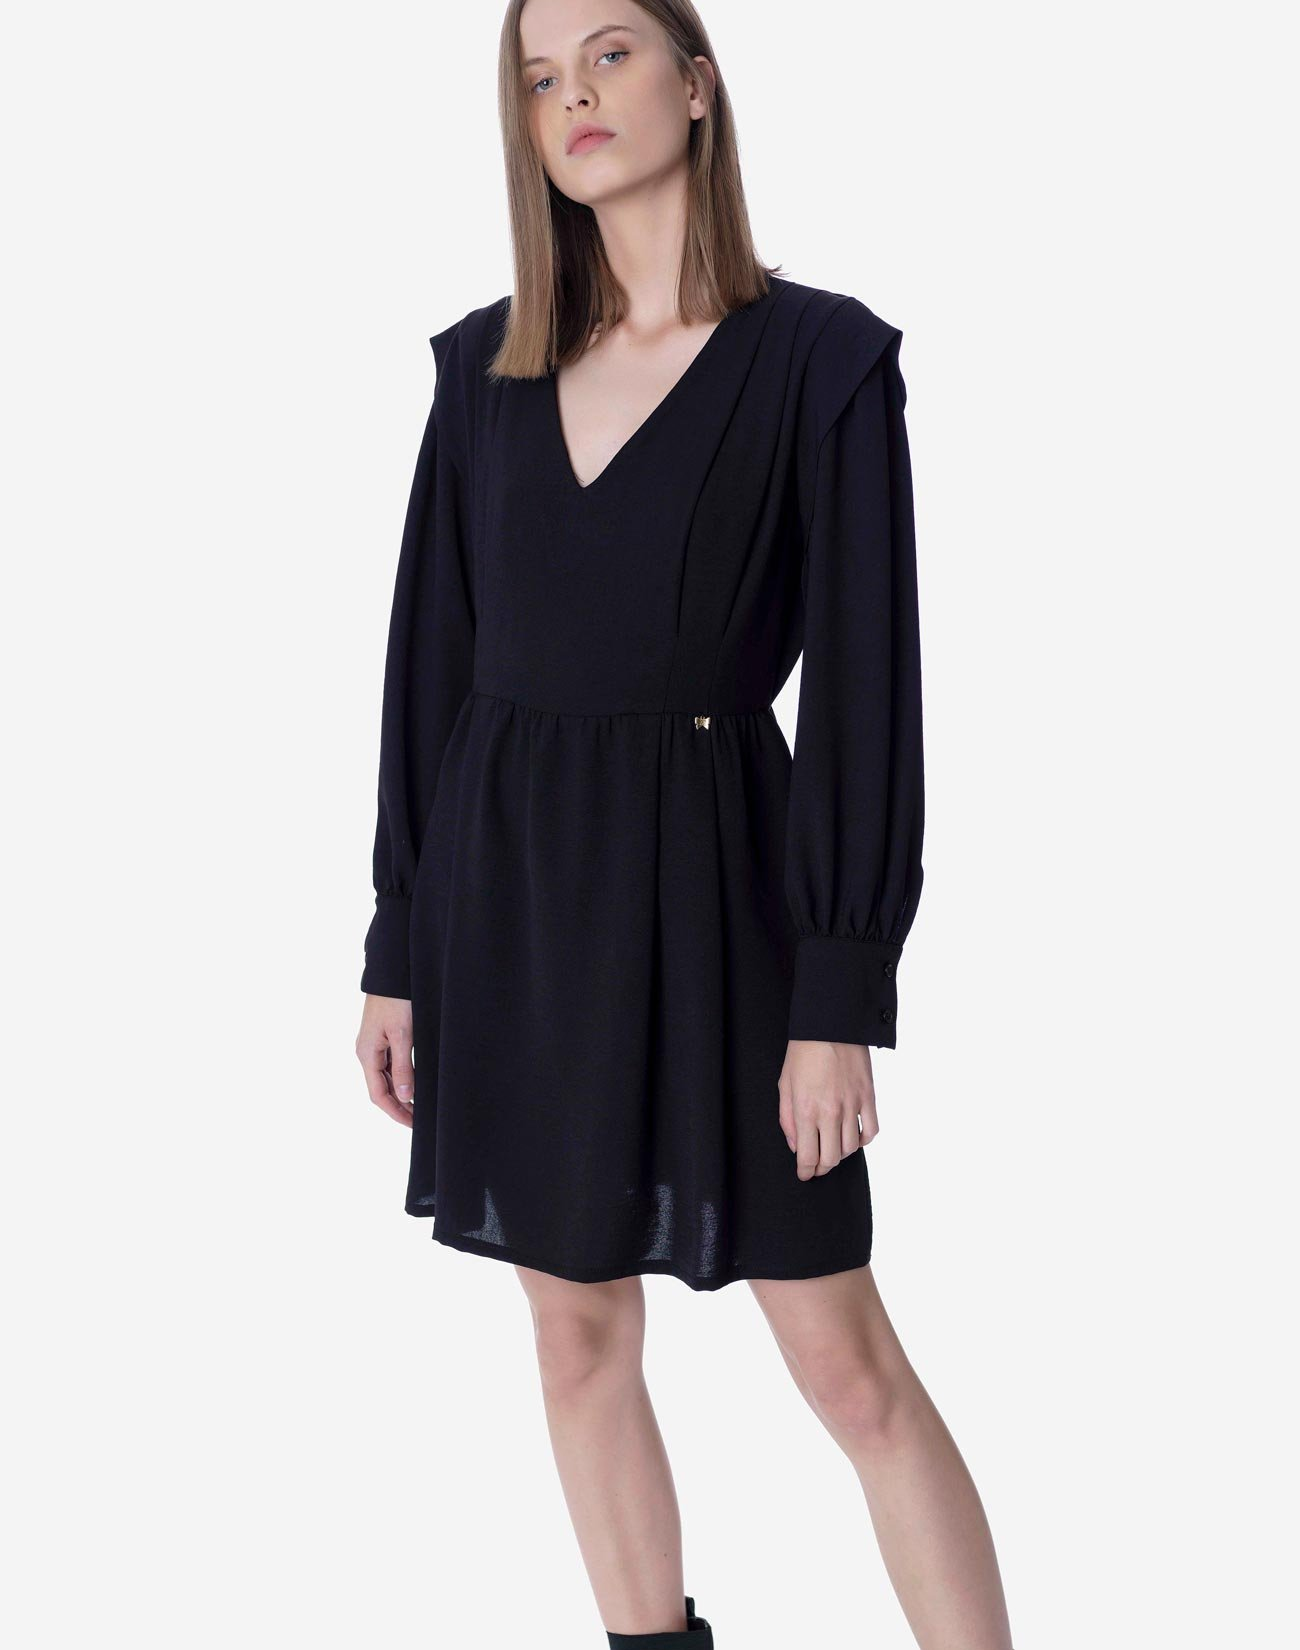 Mini dress with shoulder pads